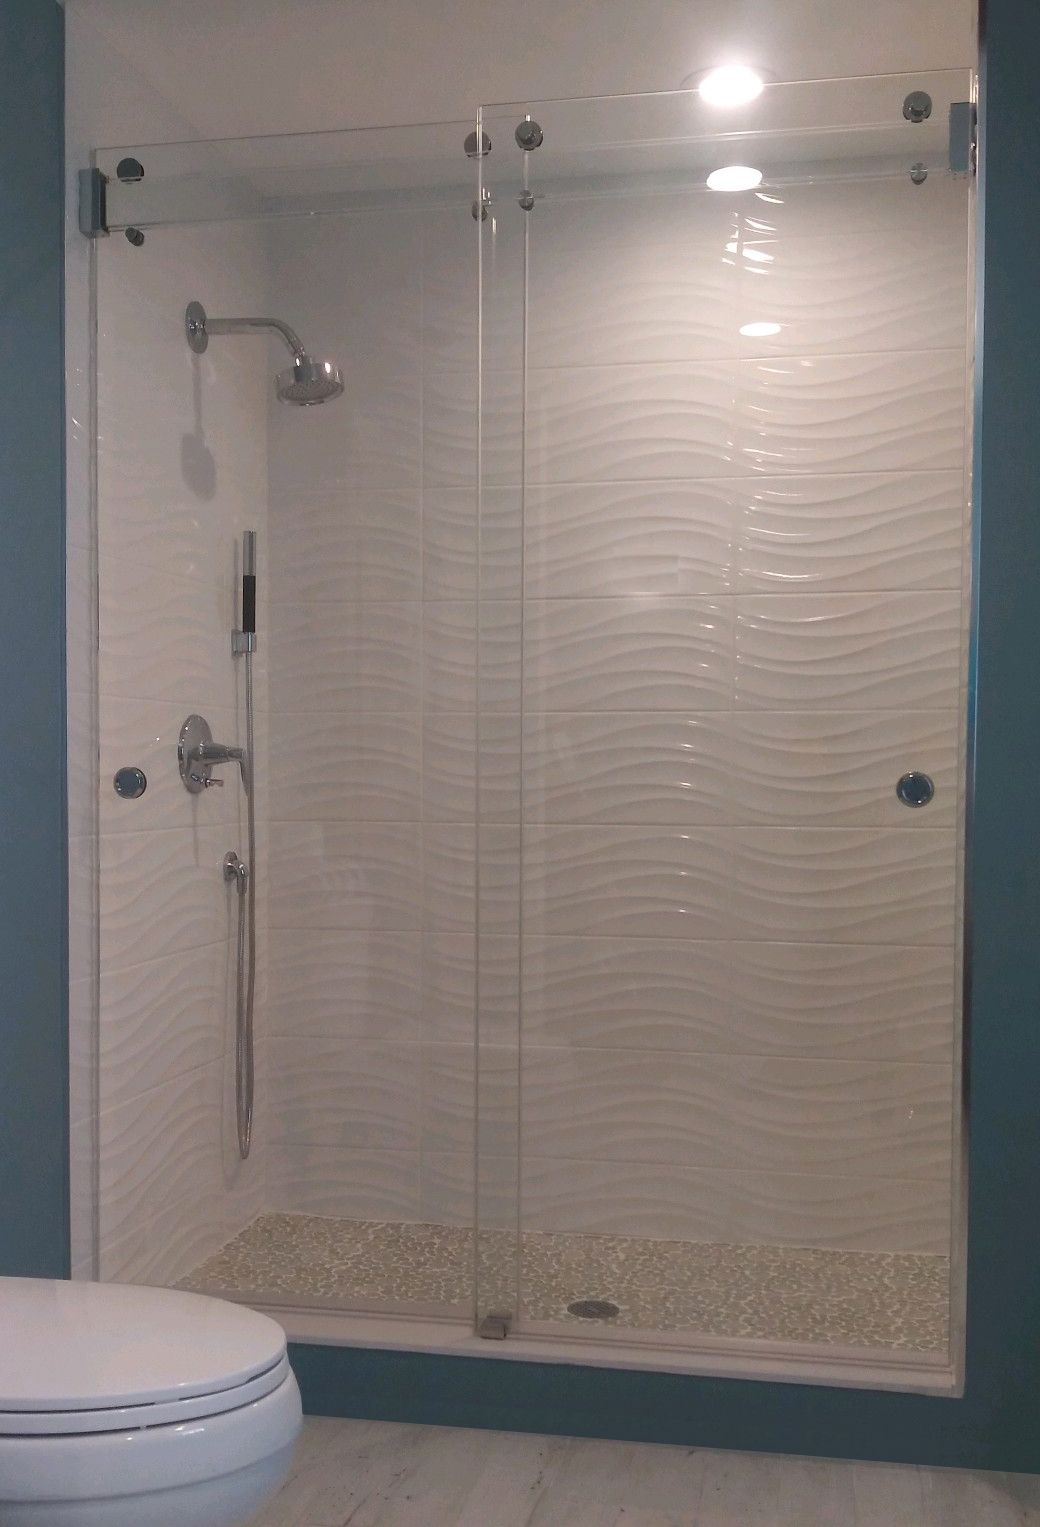 The Original Frameless Shower Doors Featuring The Clearslide The